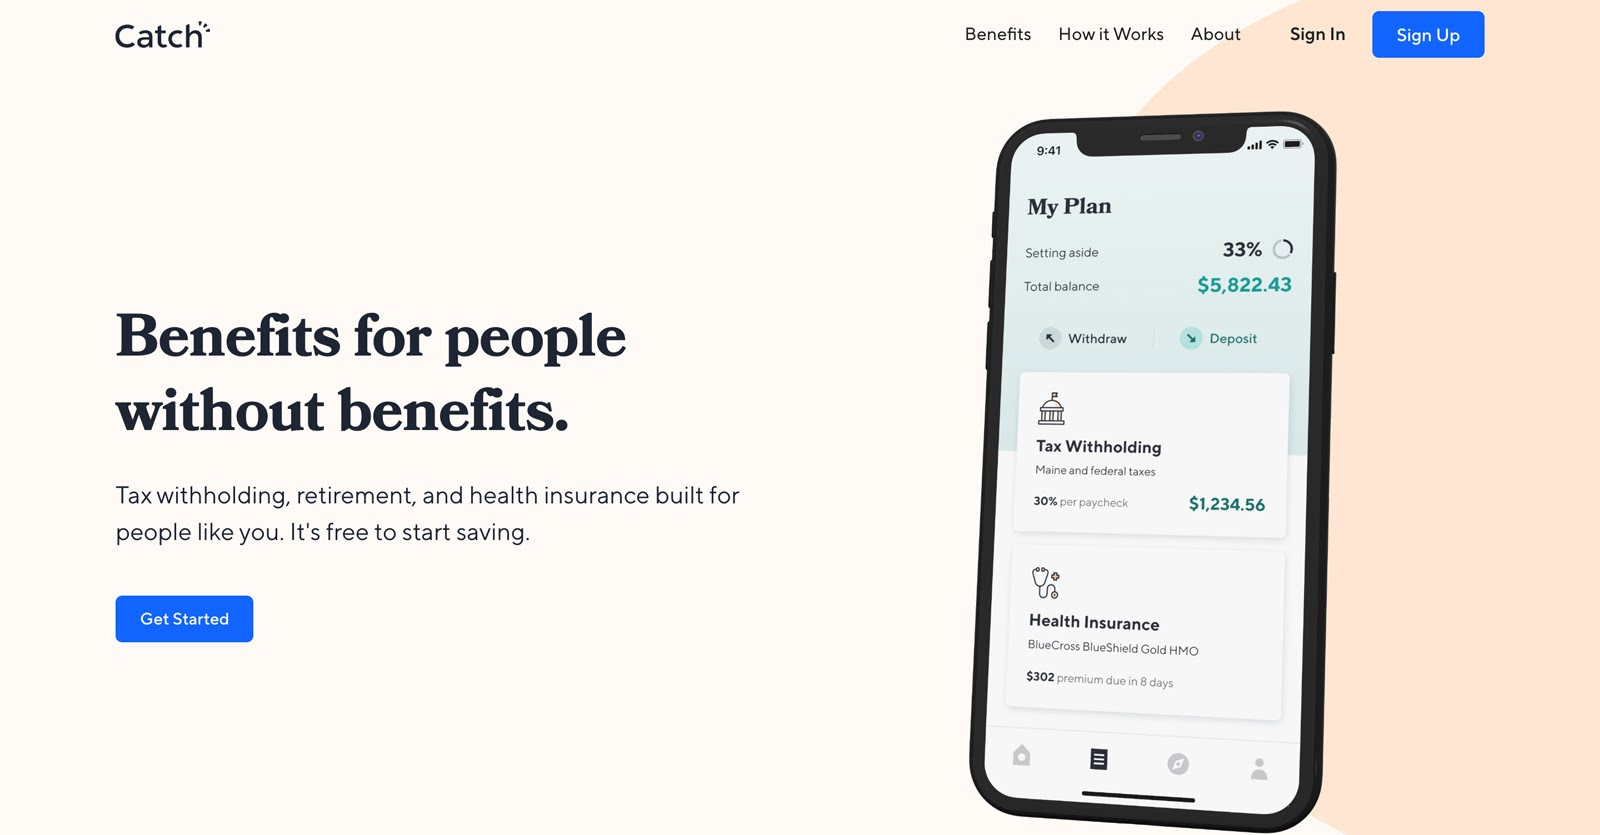 catch benefits website